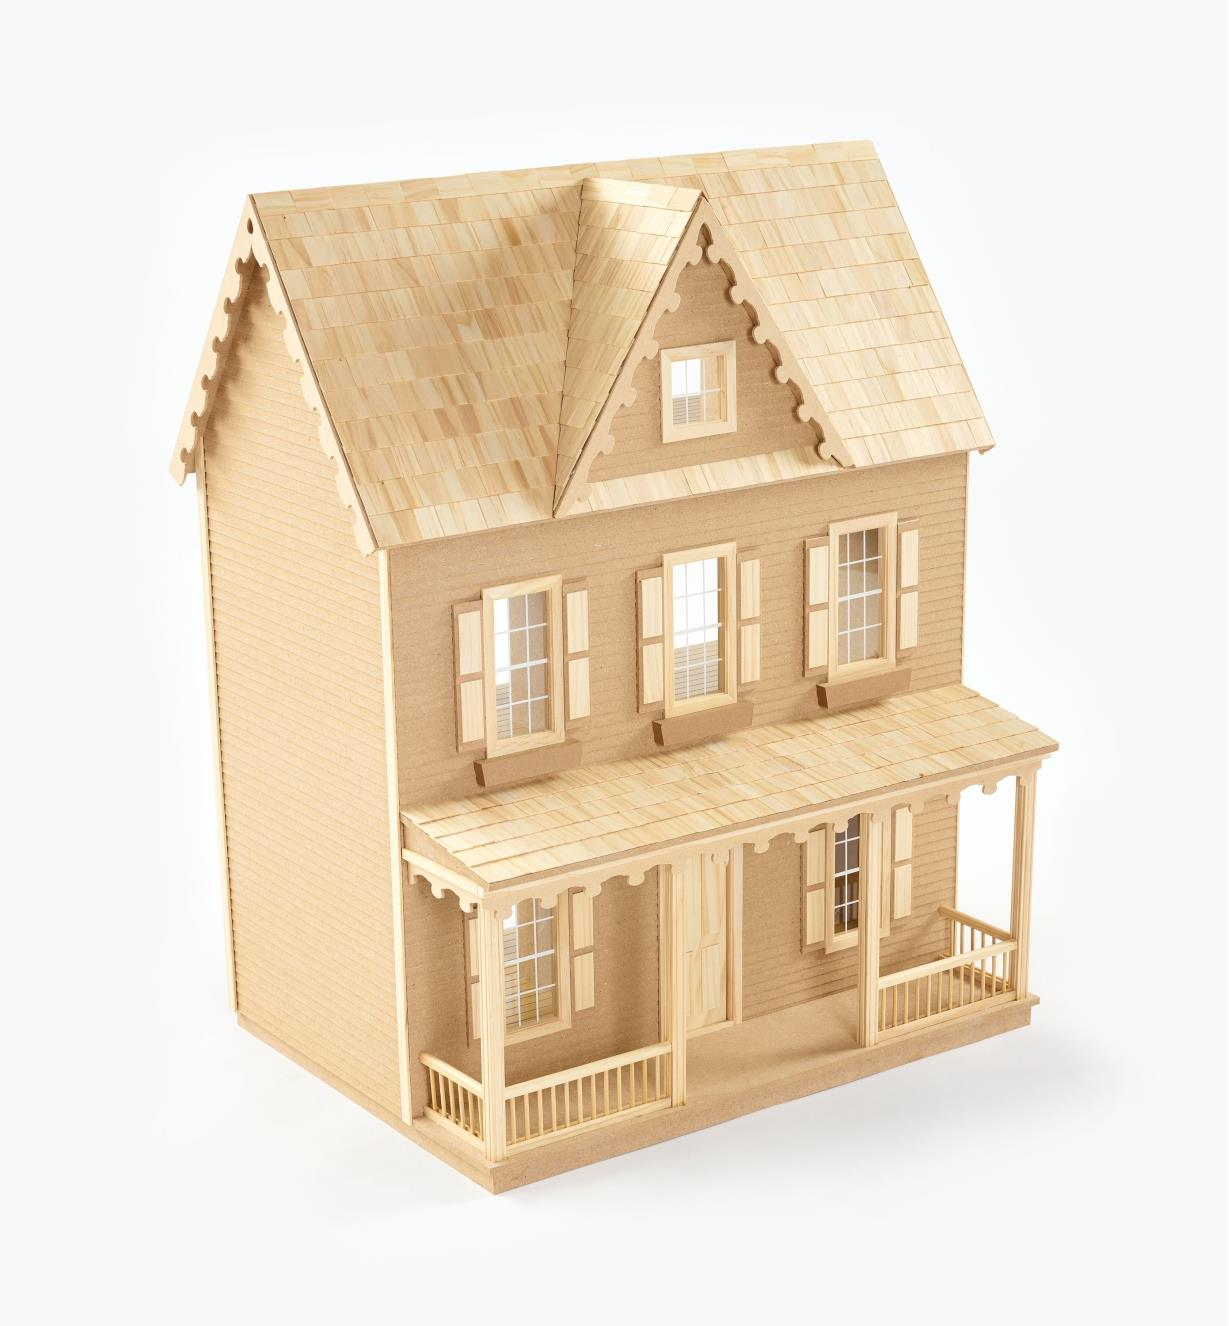 Assembled dollhouse